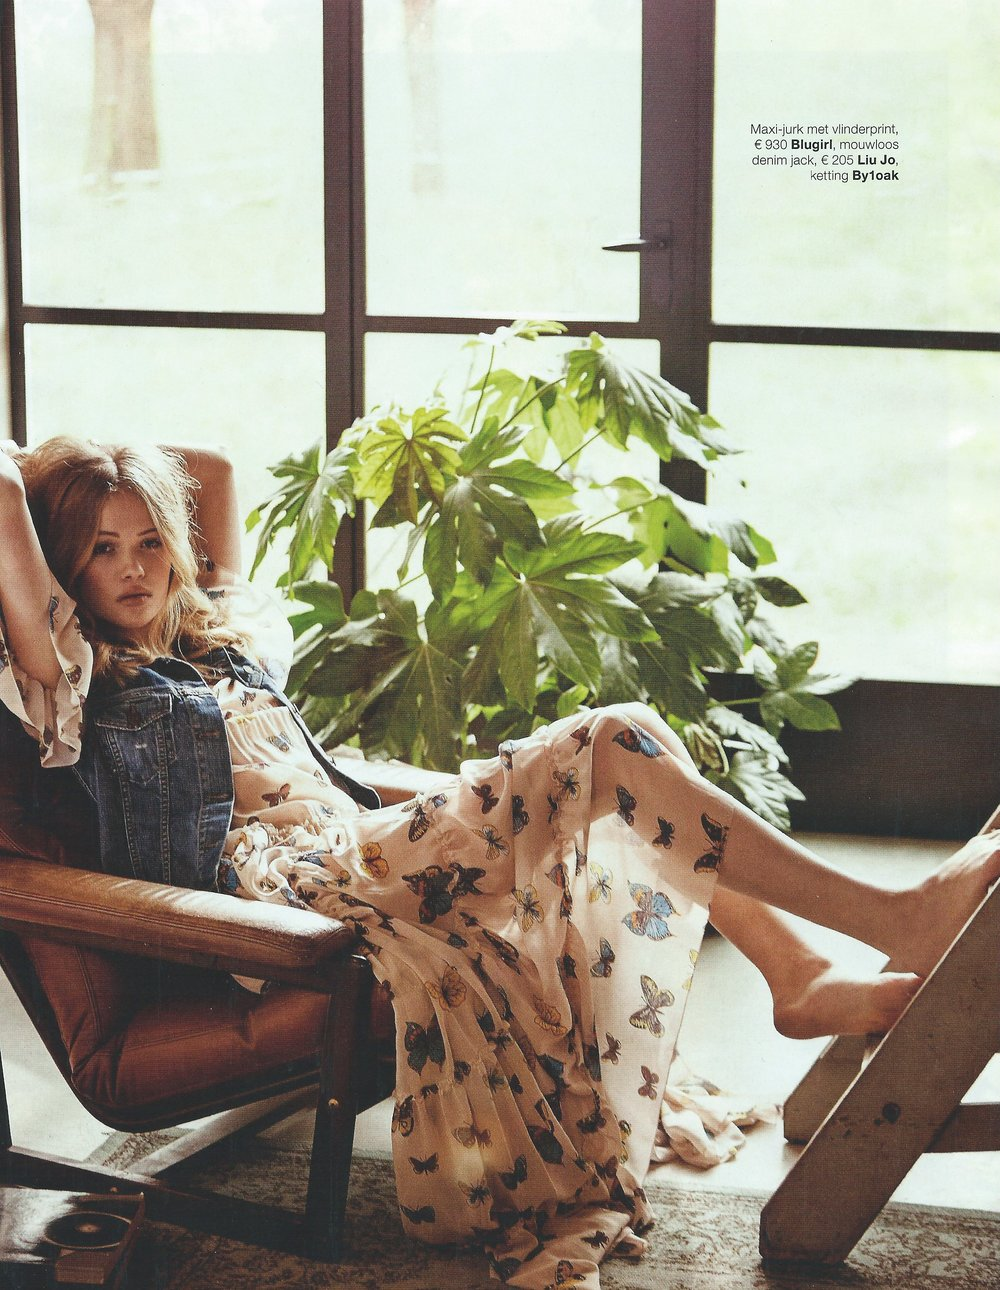 Marie-MarieClaire-May'16-2.jpeg